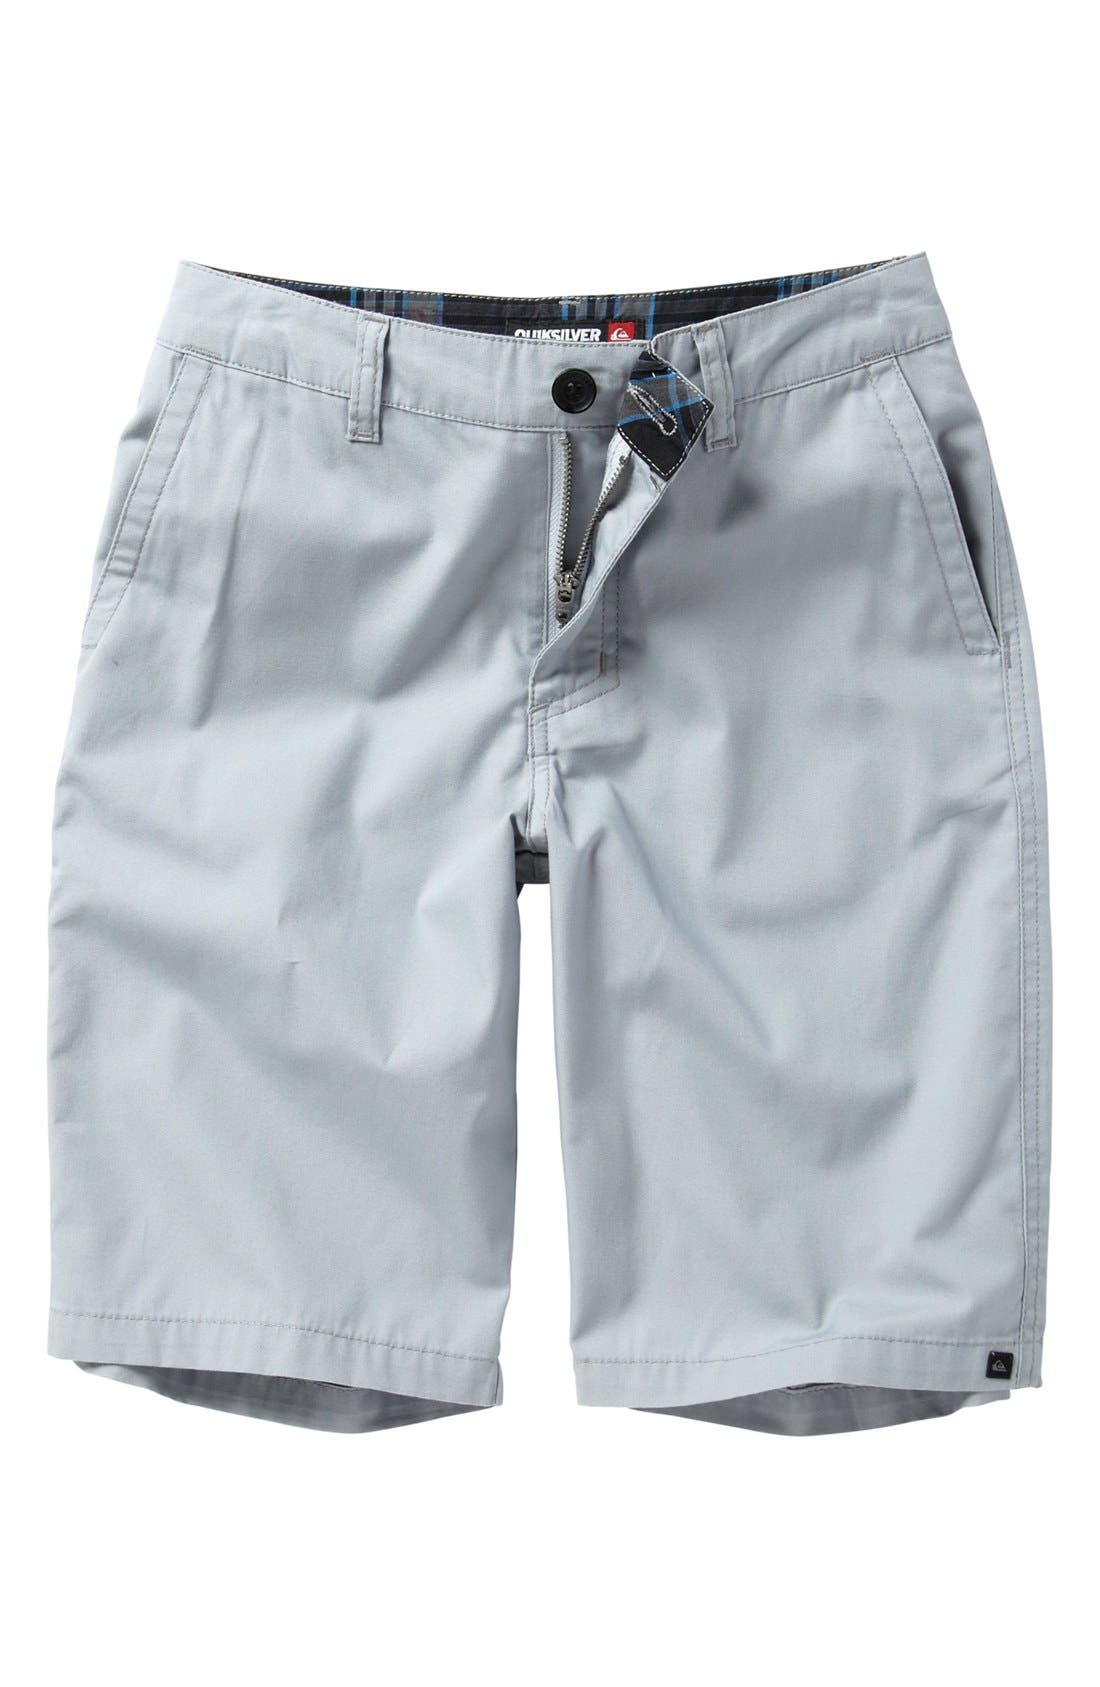 Alternate Image 1 Selected - Quiksilver 'Rockefeller' Shorts (Big Boys)